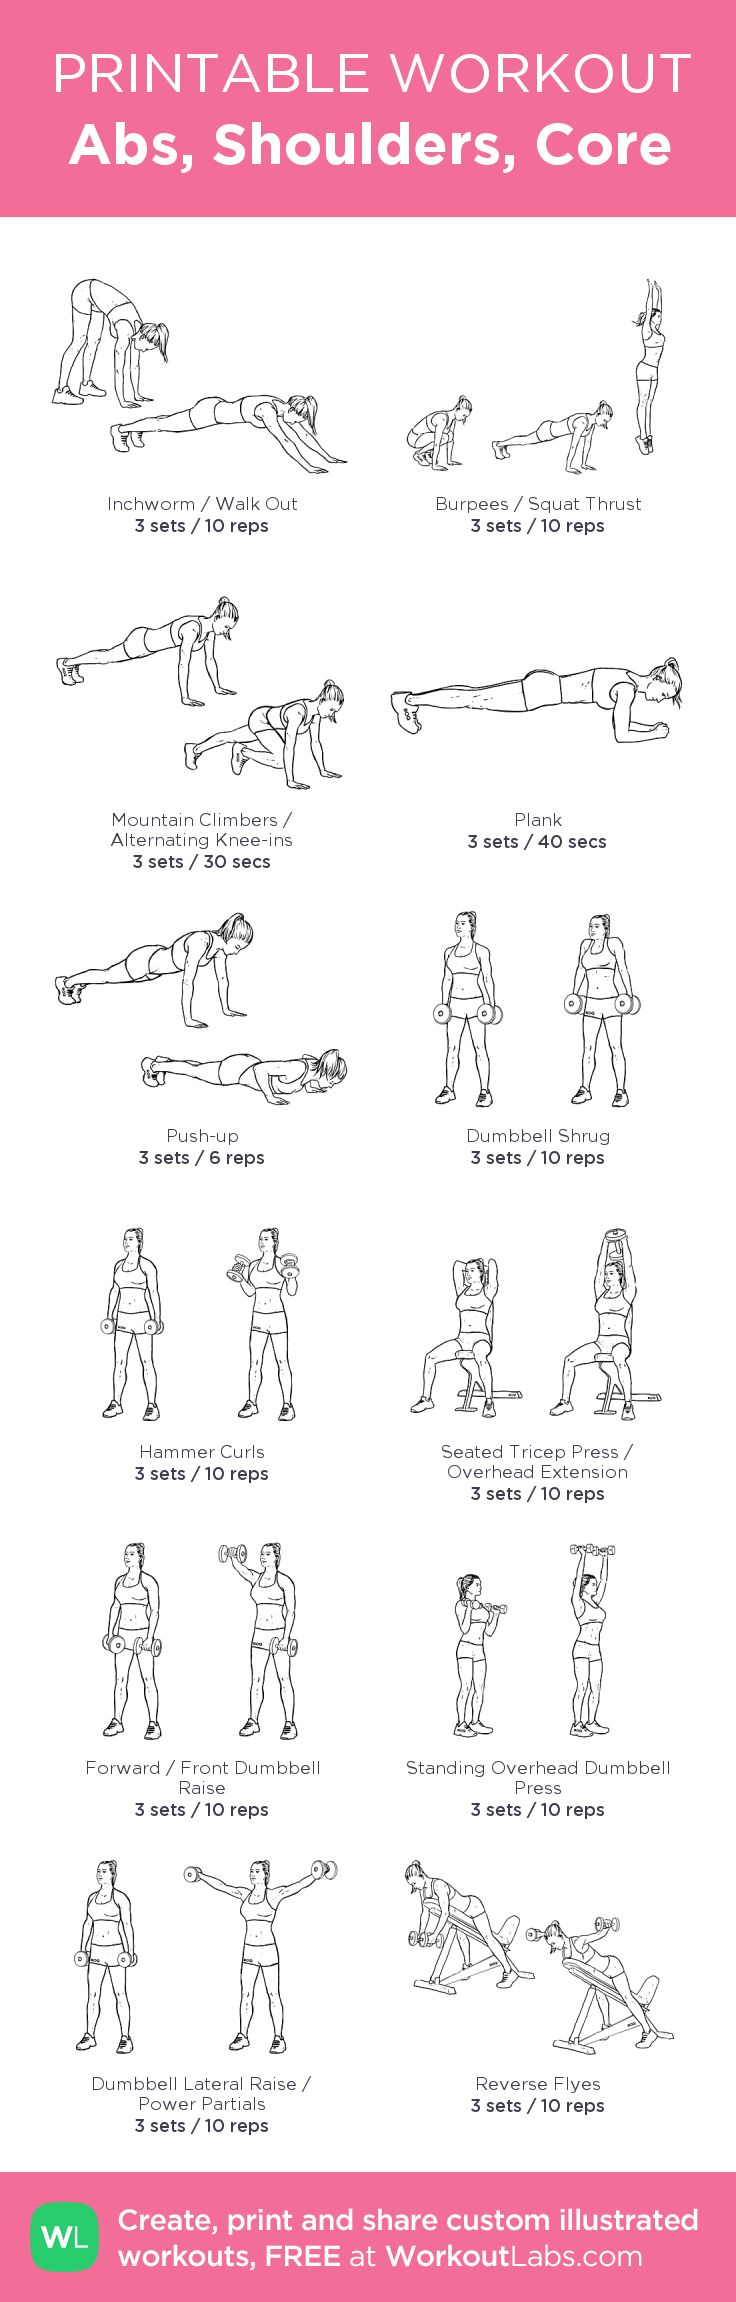 Abs, Shoulders, Core: my visual workout created at WorkoutLabs.com • Click through to customize and download as a FREE PDF! #customworkout